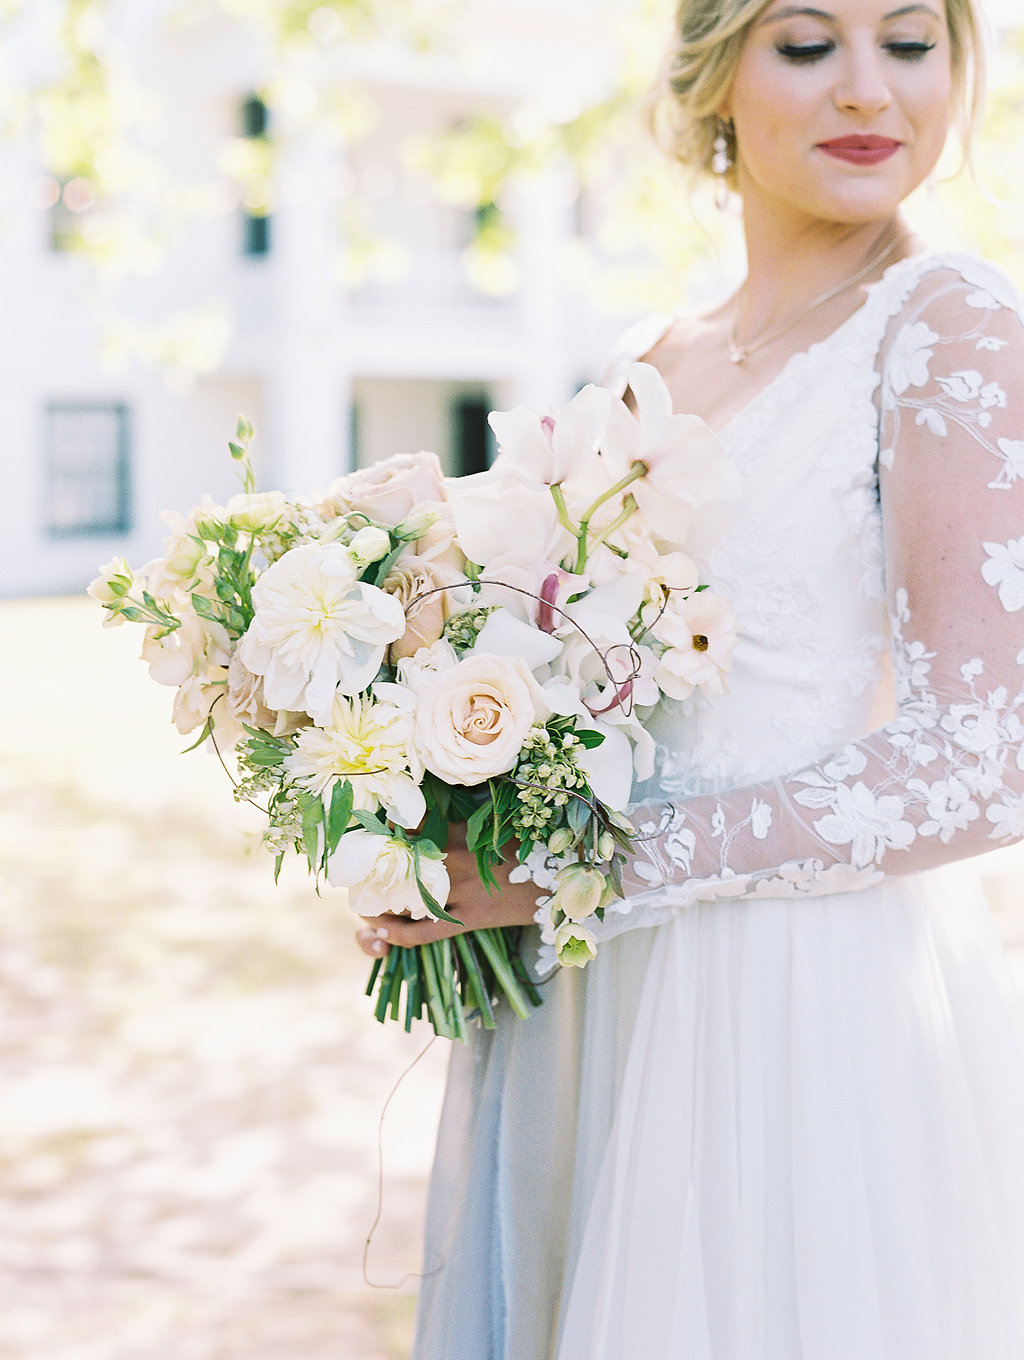 bride wearing lace long-sleeved gown holding neutral and green bouquet